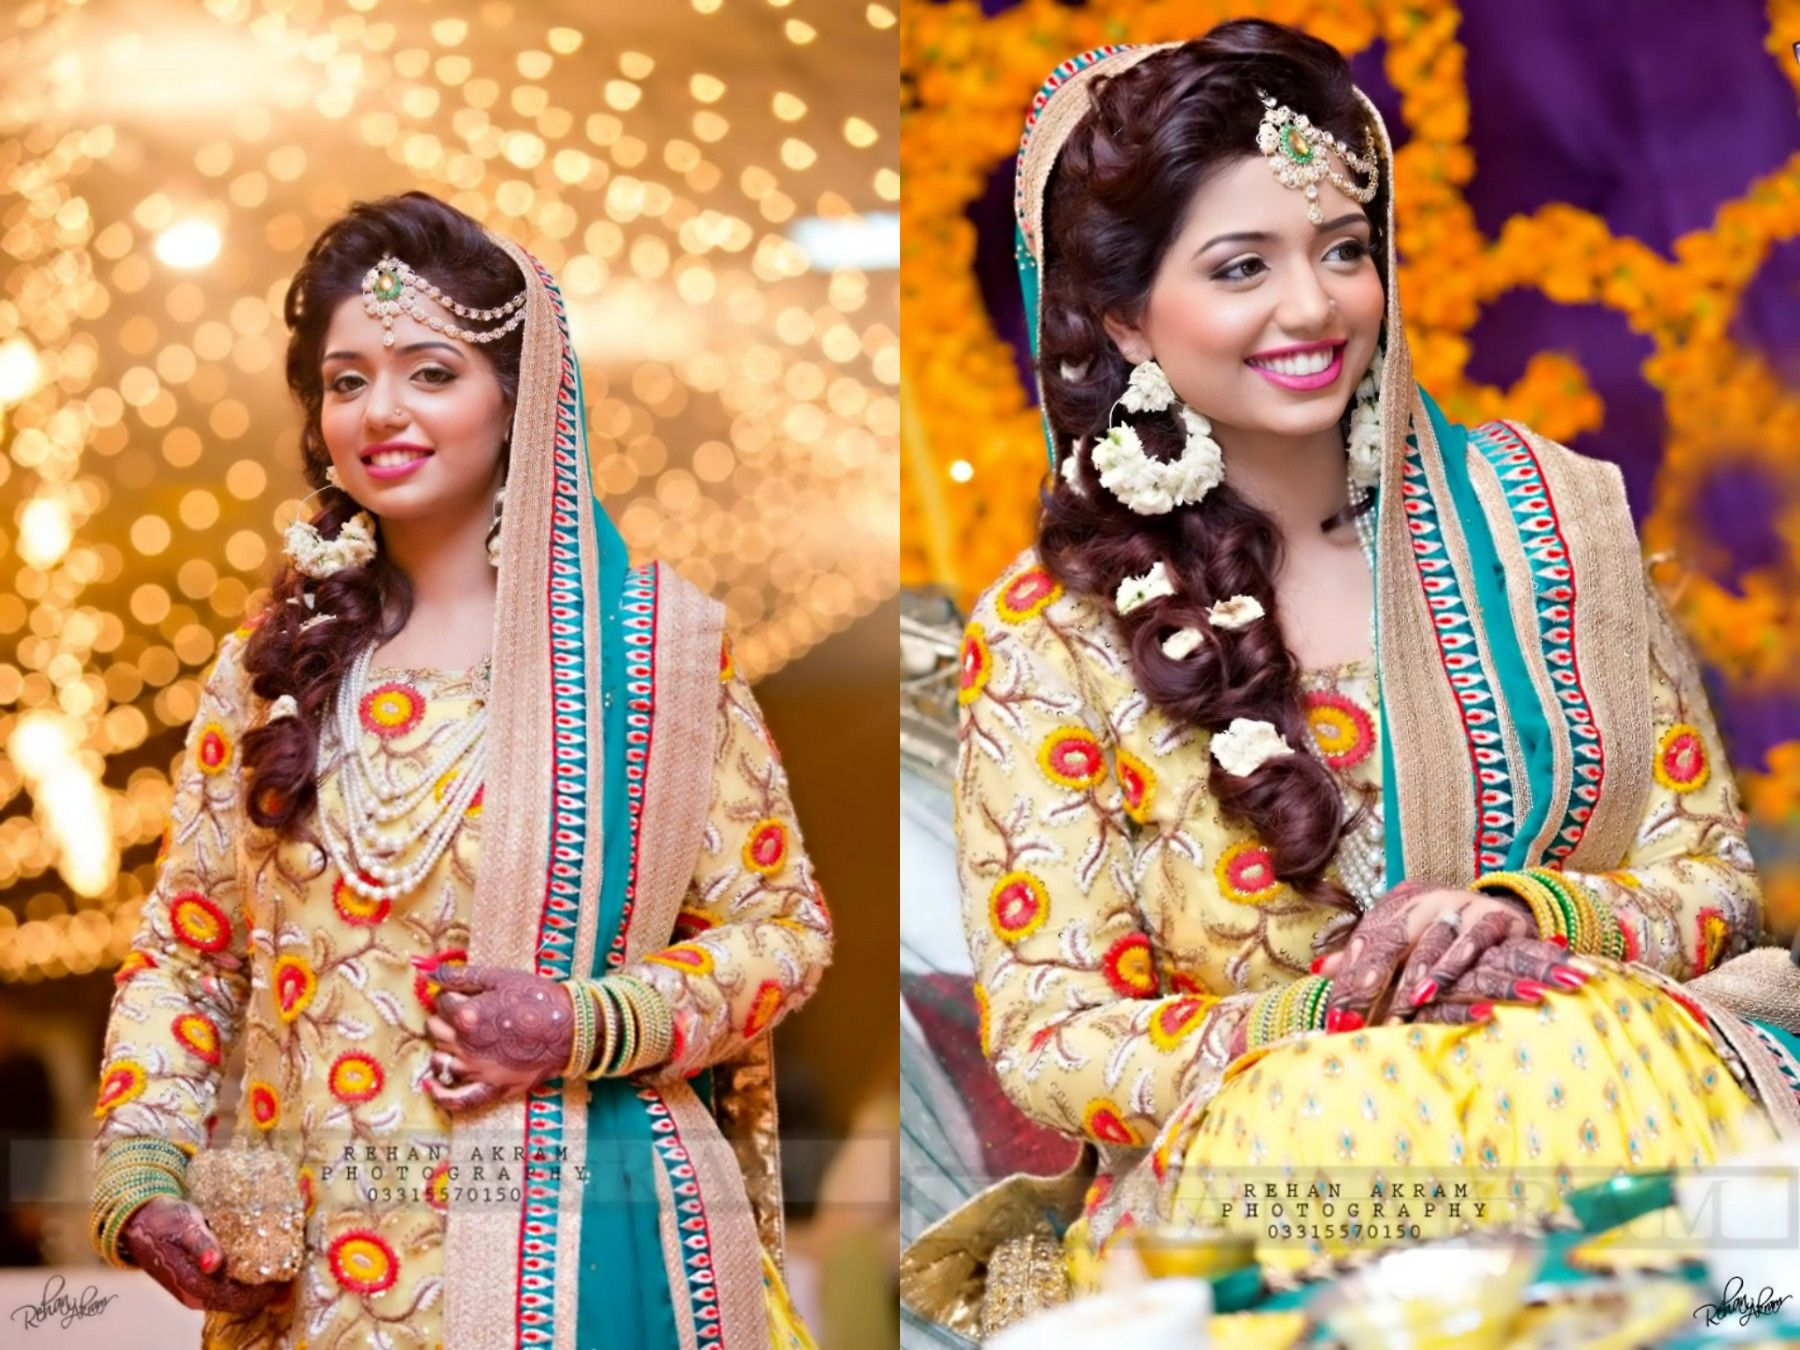 Mehndi Bridal Photoshoot : Pretty mehndi bride photography by rehan akram wedding